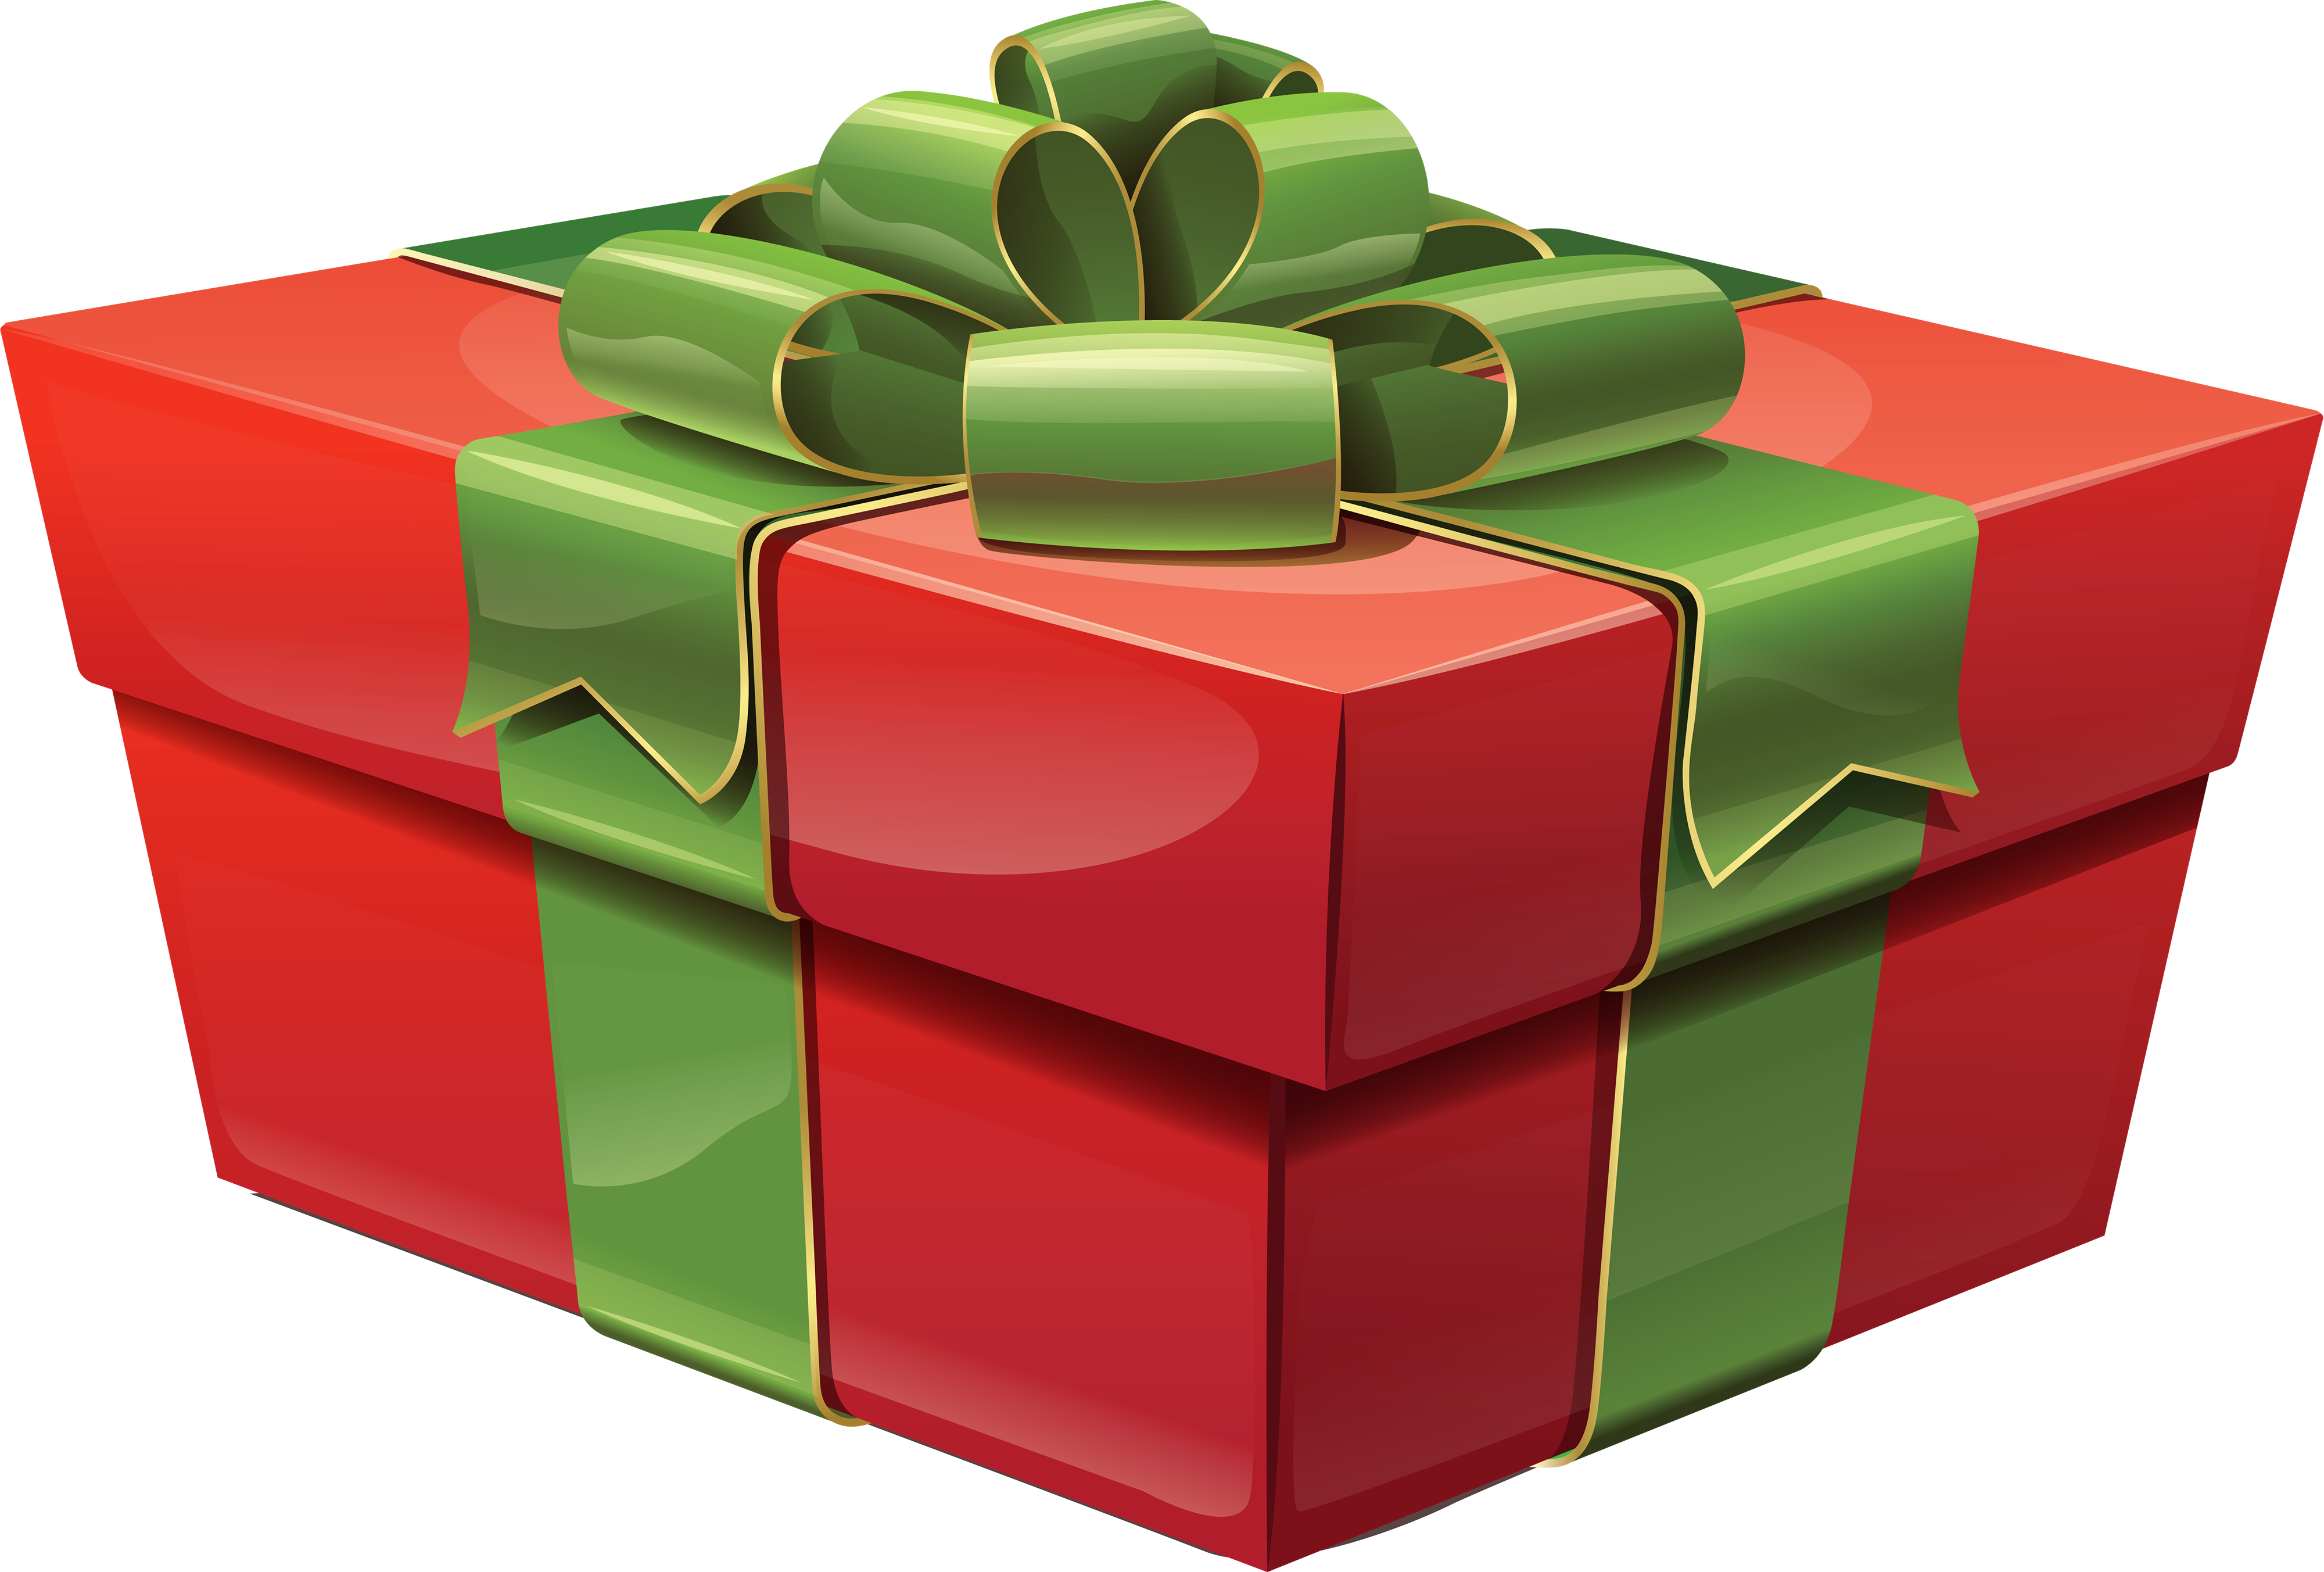 Christmas present box png. Transparent red large gift